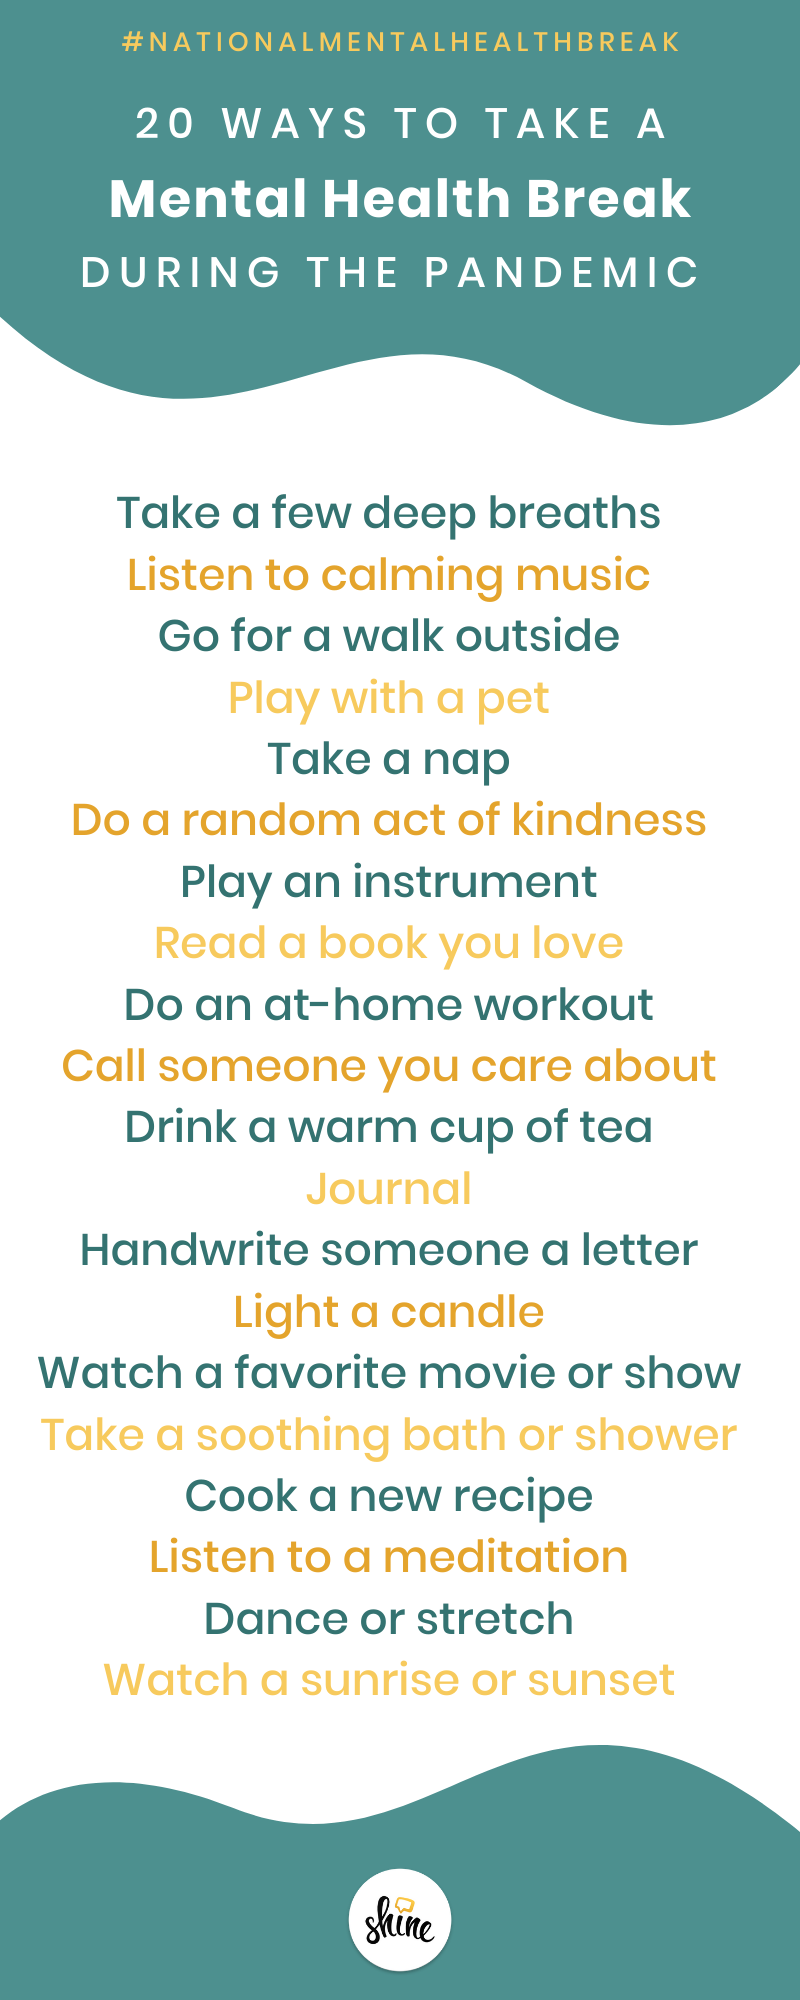 20-ways-mental-health-break